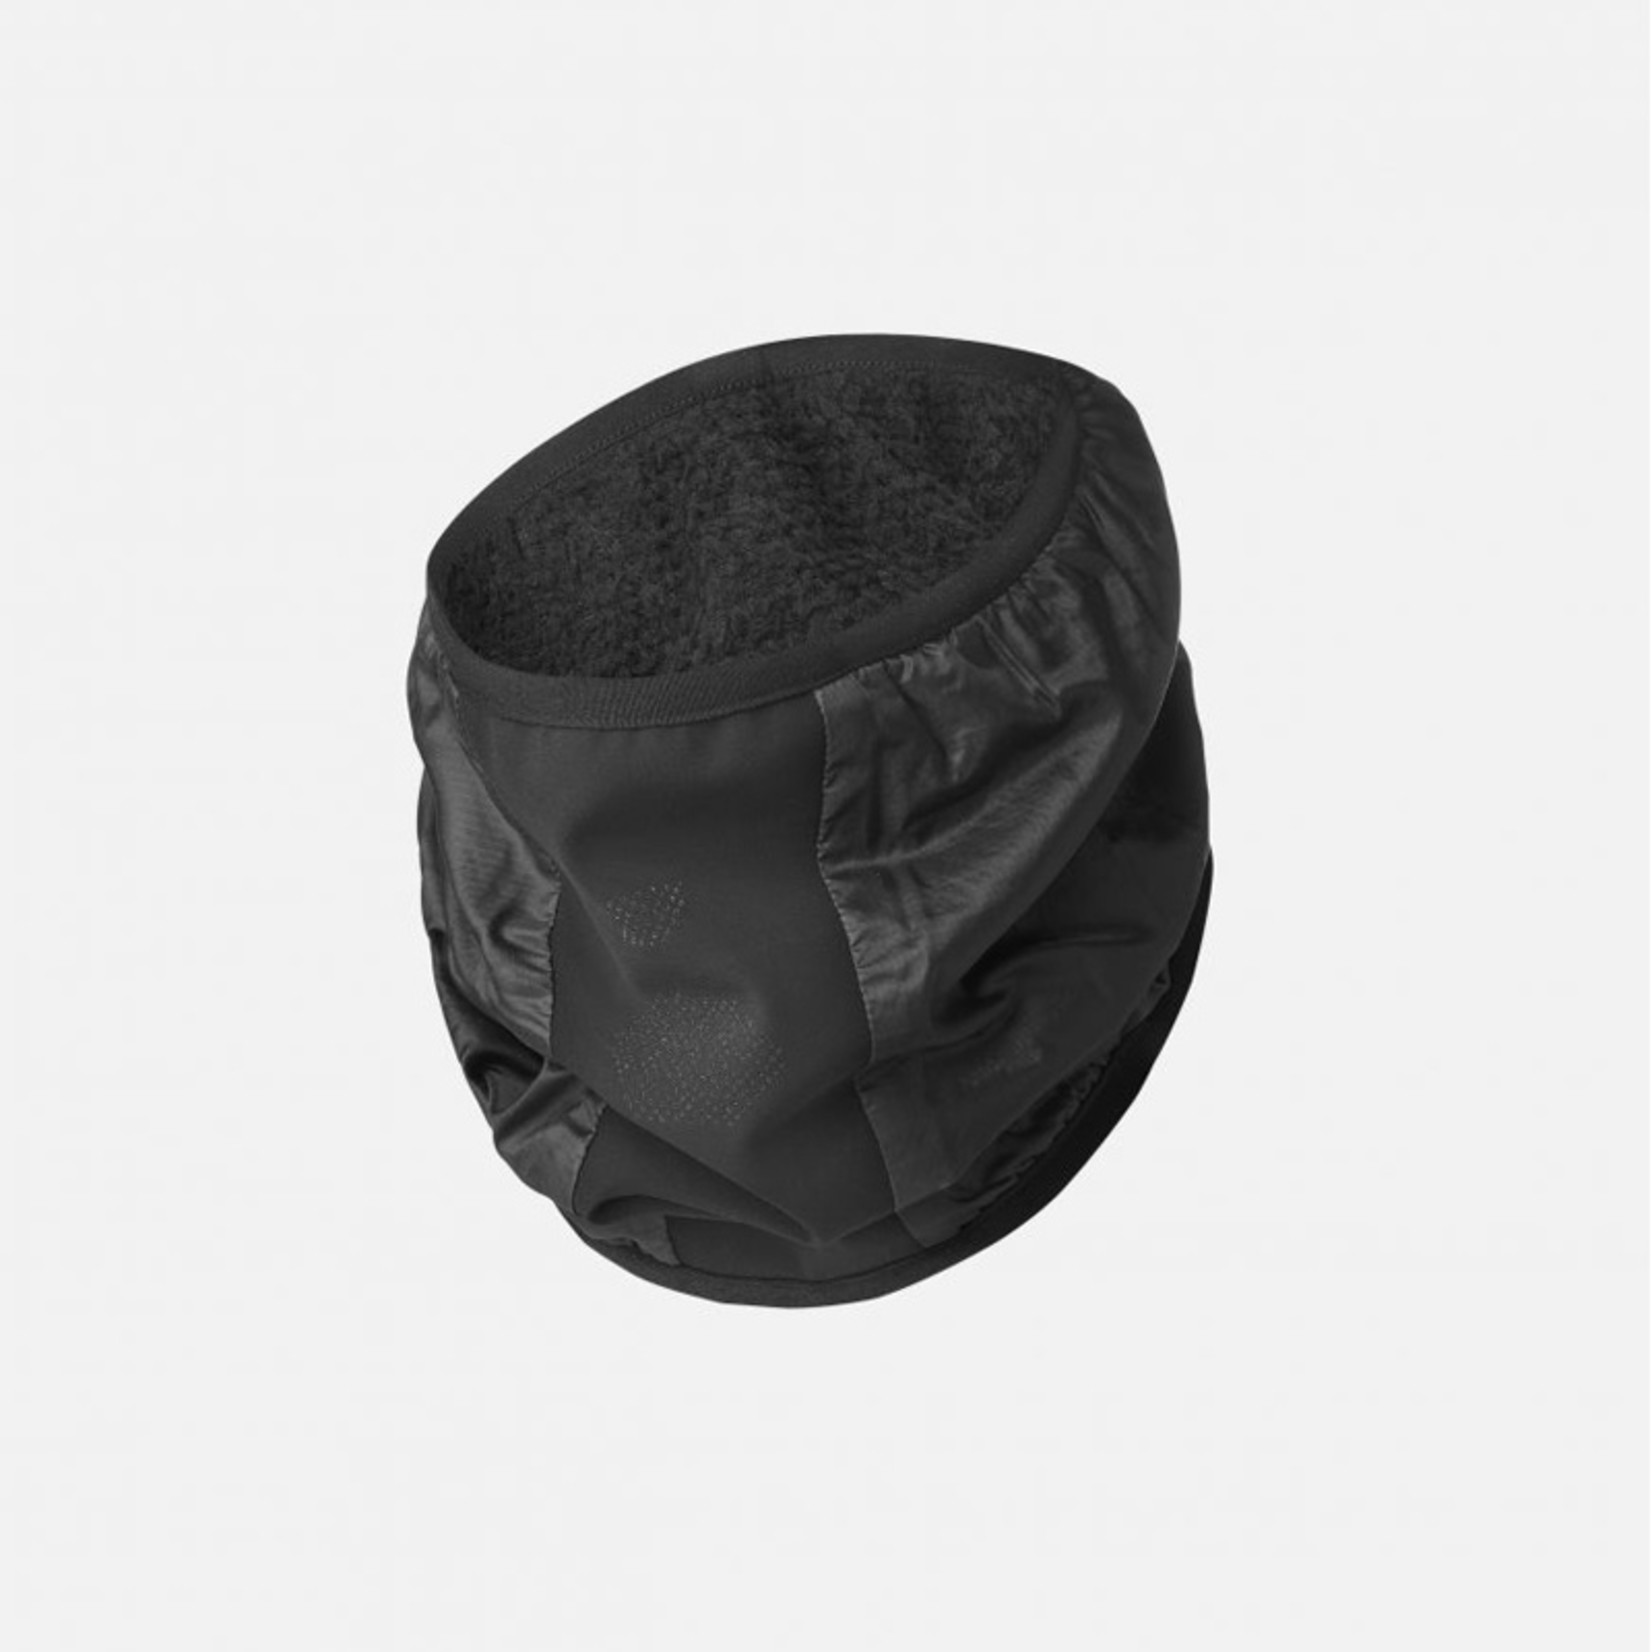 PEdALED PEdALED Tokaido Neck Warmer